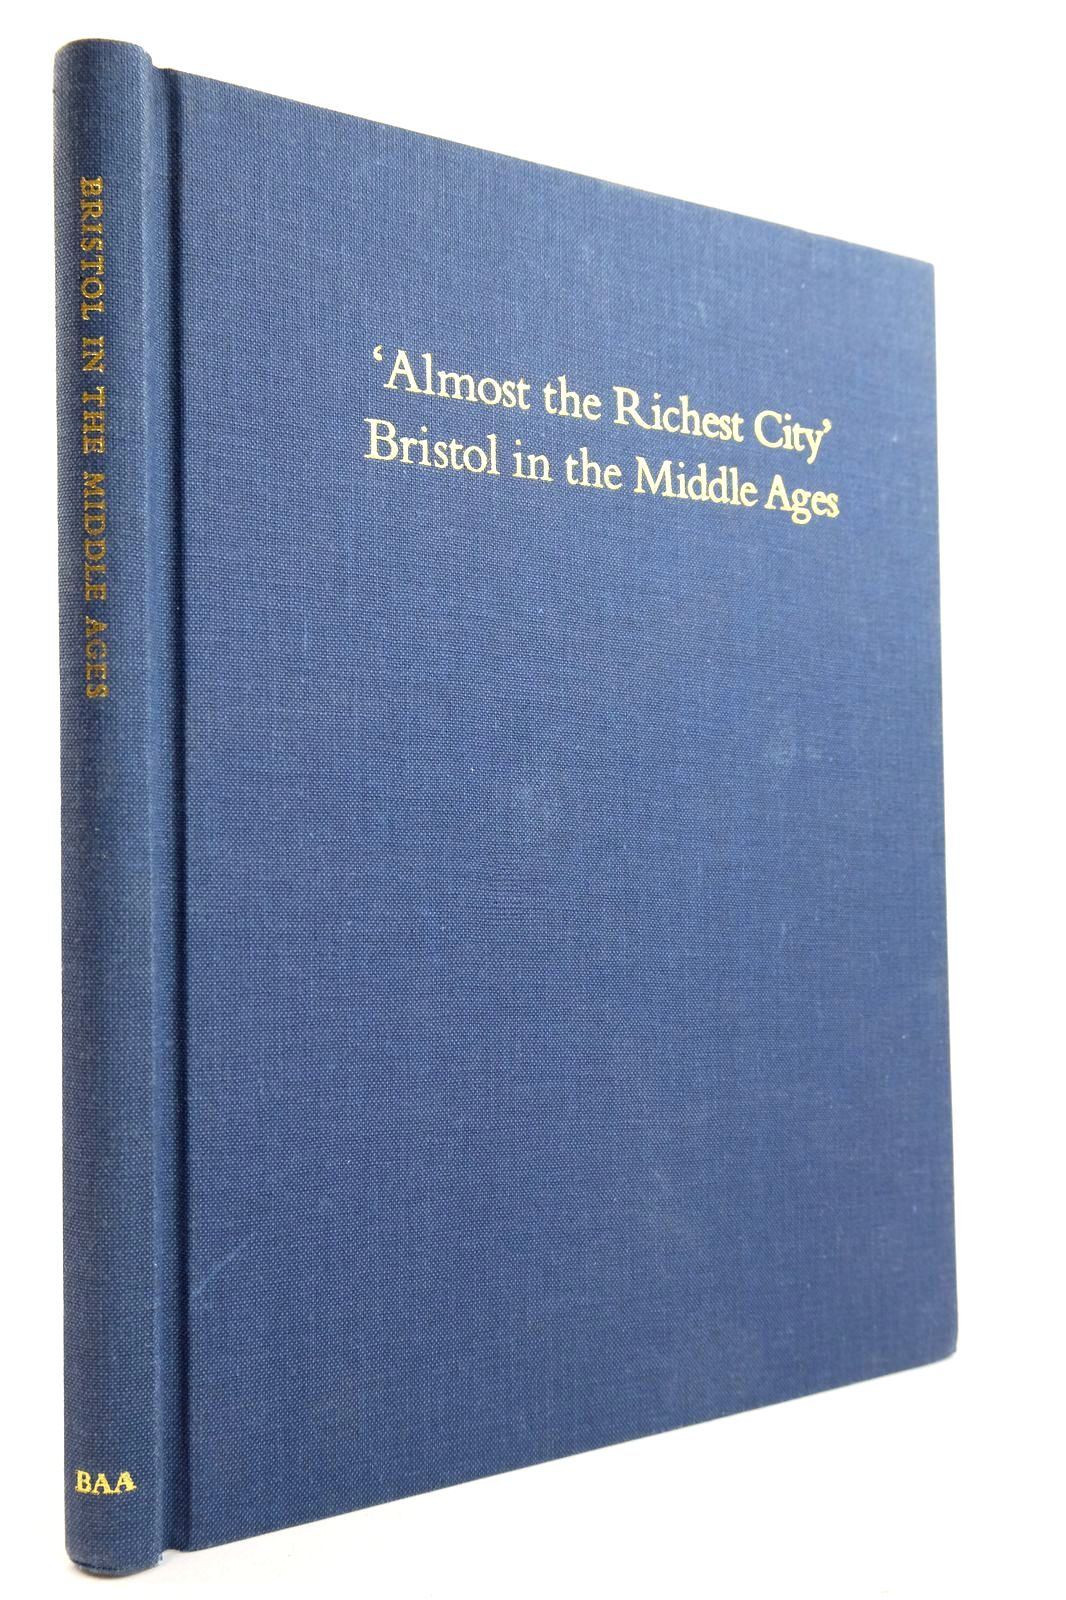 Photo of 'ALMOST THE RICHEST CITY' BRISTOL IN THE MIDDLE AGES written by Keen, Laurence published by The British Archaeological Association (STOCK CODE: 2132599)  for sale by Stella & Rose's Books